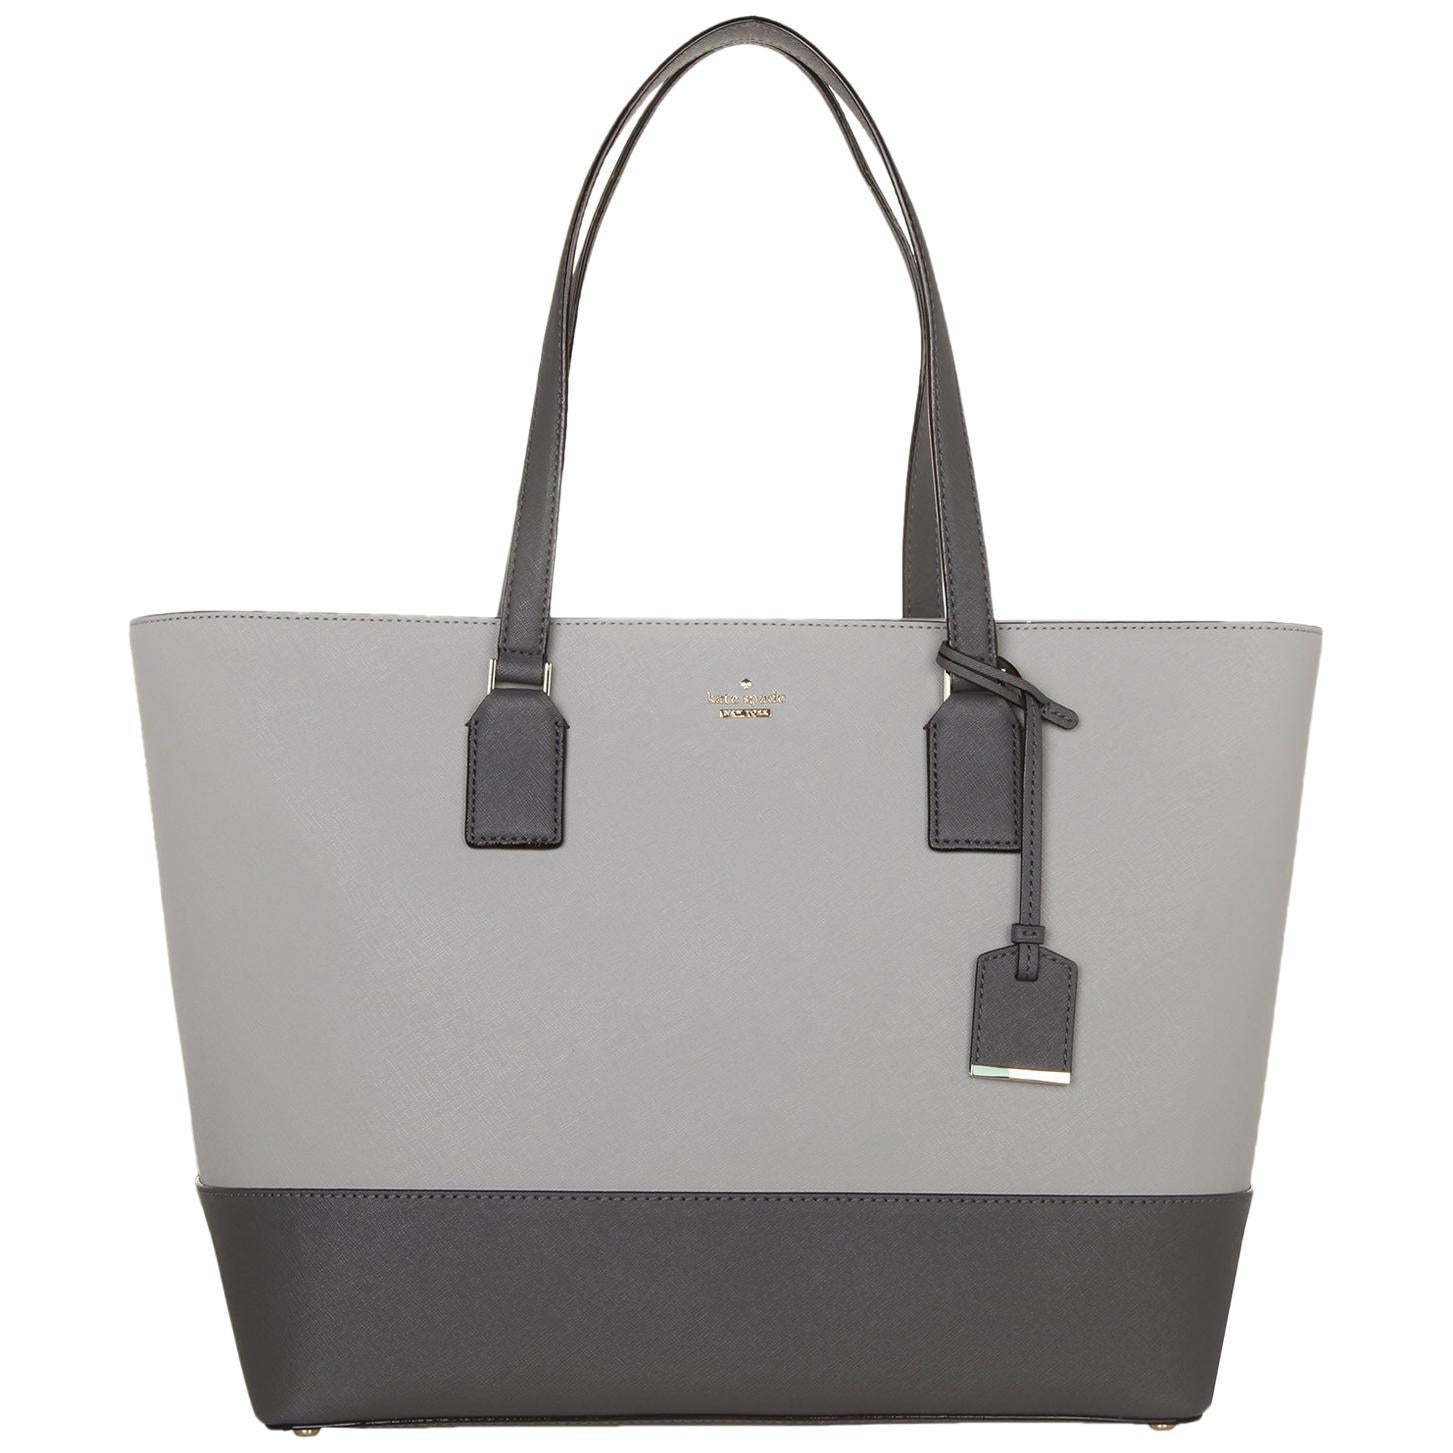 Tote Bags on Sale at 1stdibs 2d45cc09ca30c